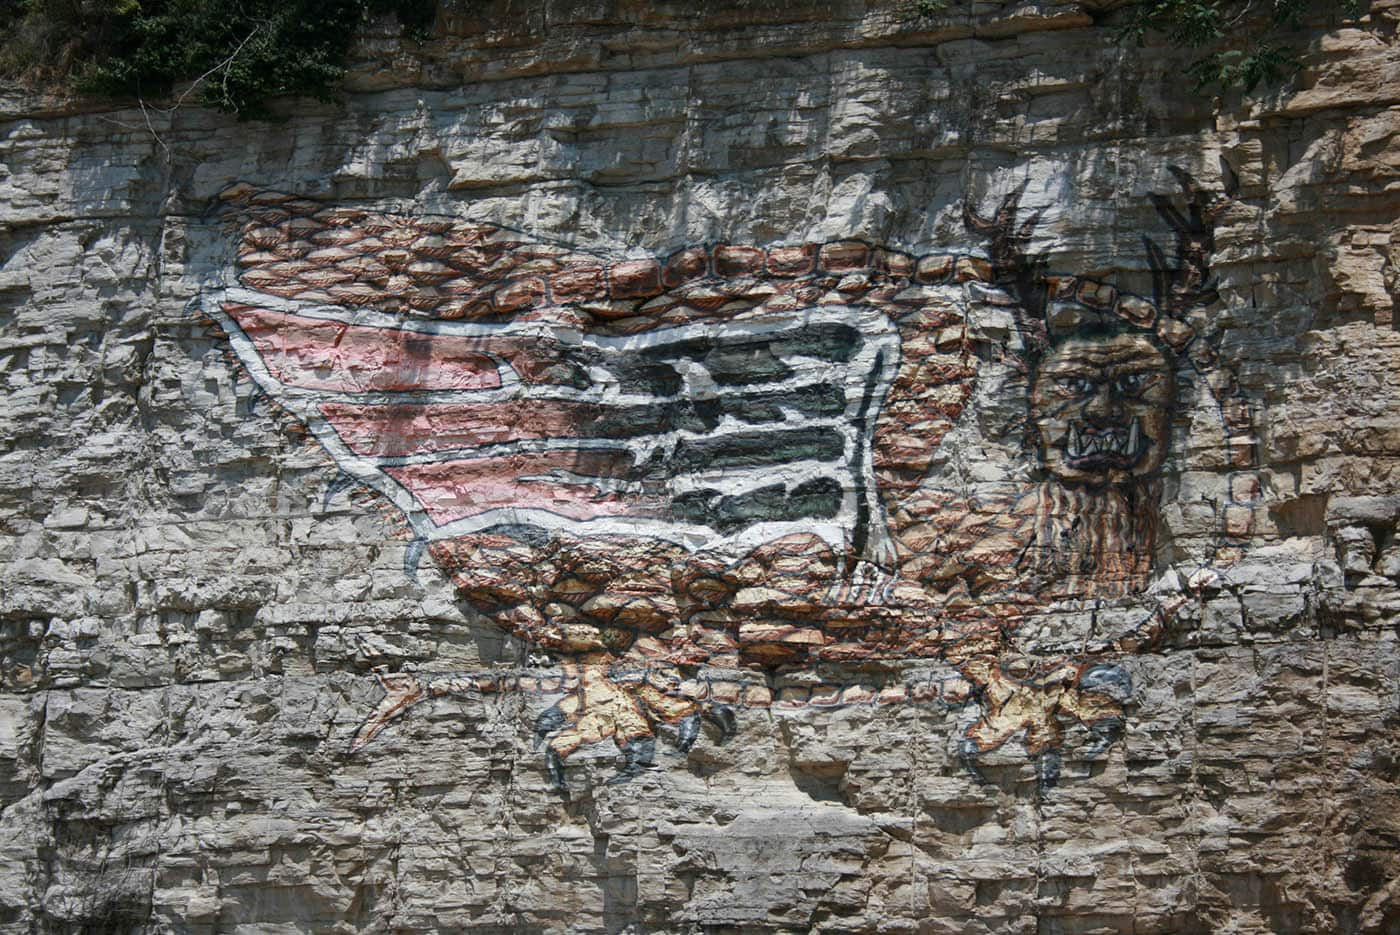 ILLINOIS ROAD TRIP AND ROADSIDE ATTRACTIONS: LEGEND OF THE PIASA BIRD IN ALTON